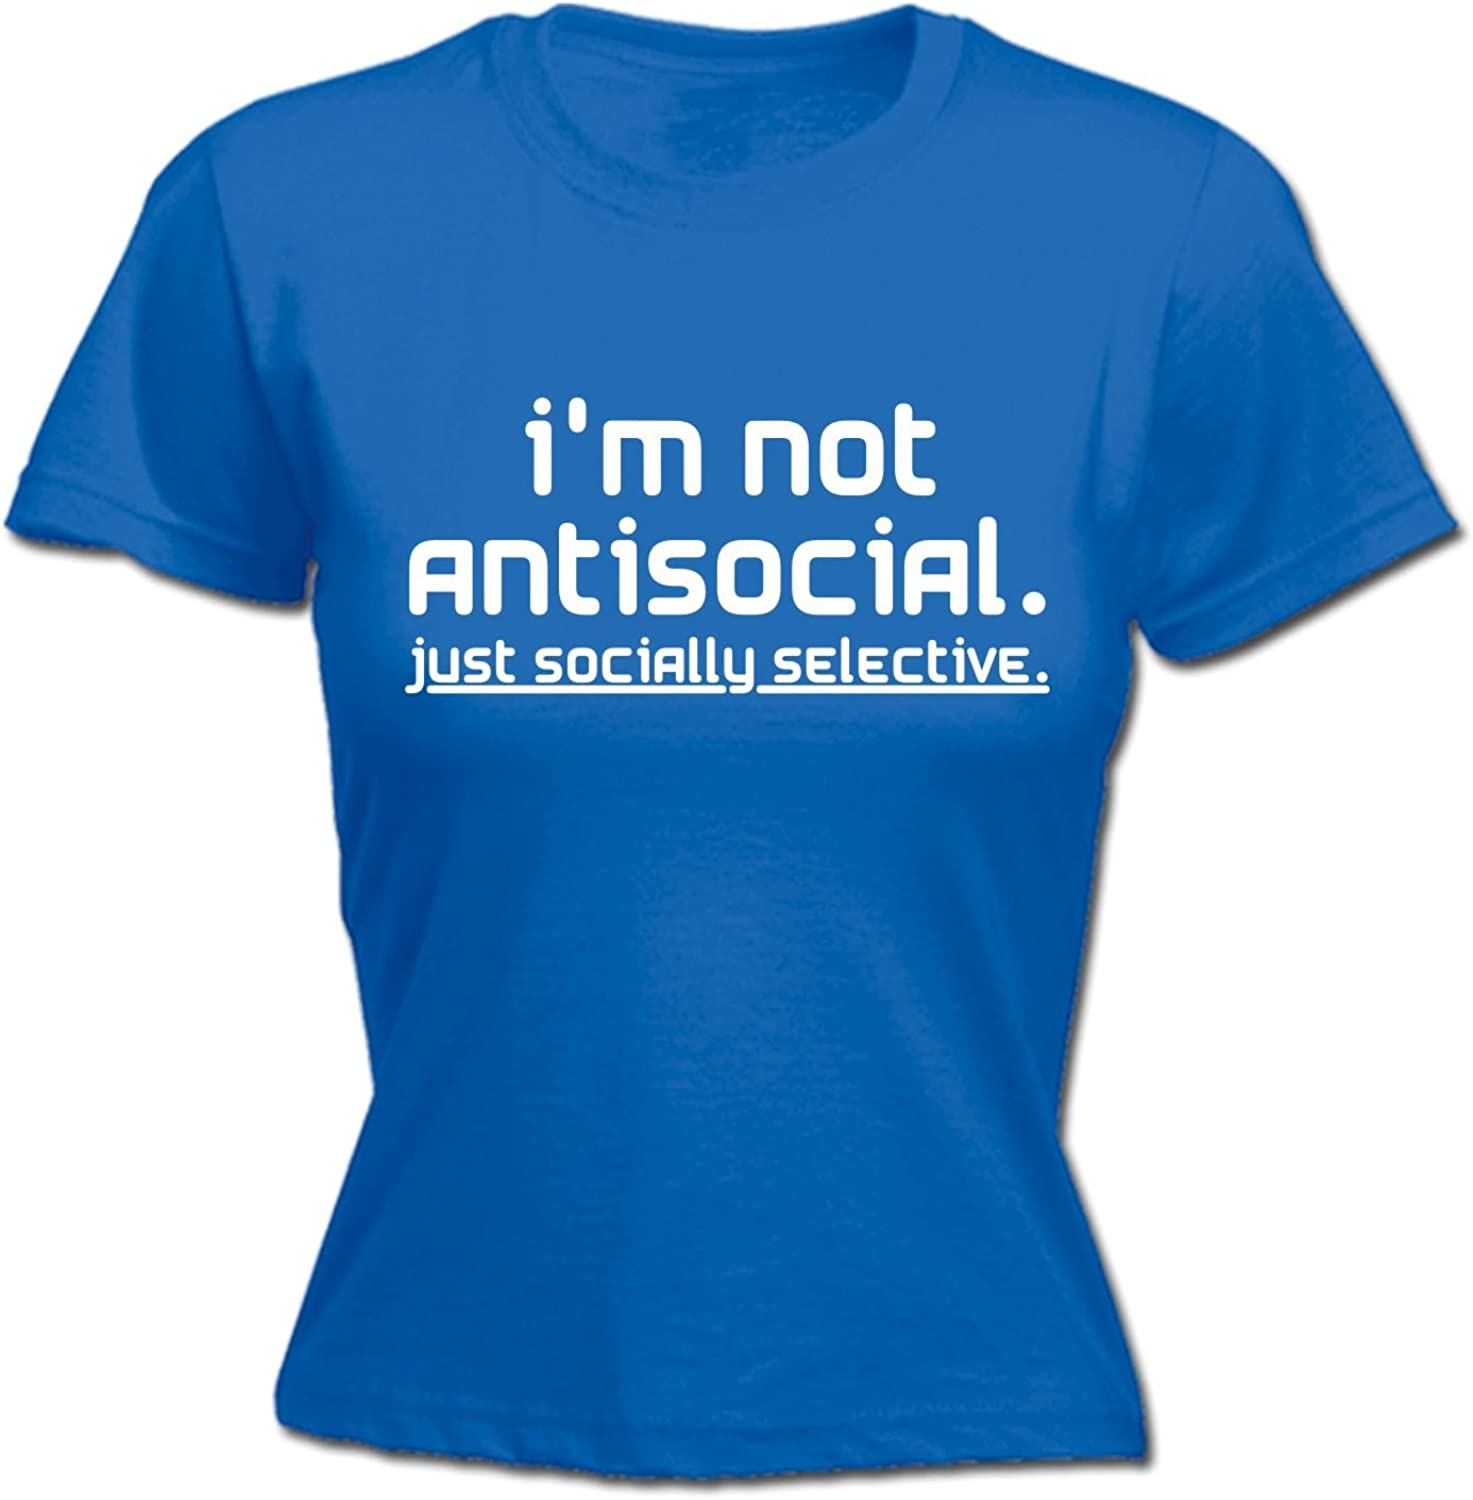 NOT ANTISOCIAL SOCIALLY SELECTIVE SWEATSHIRT funny rude top birthday gift 123t